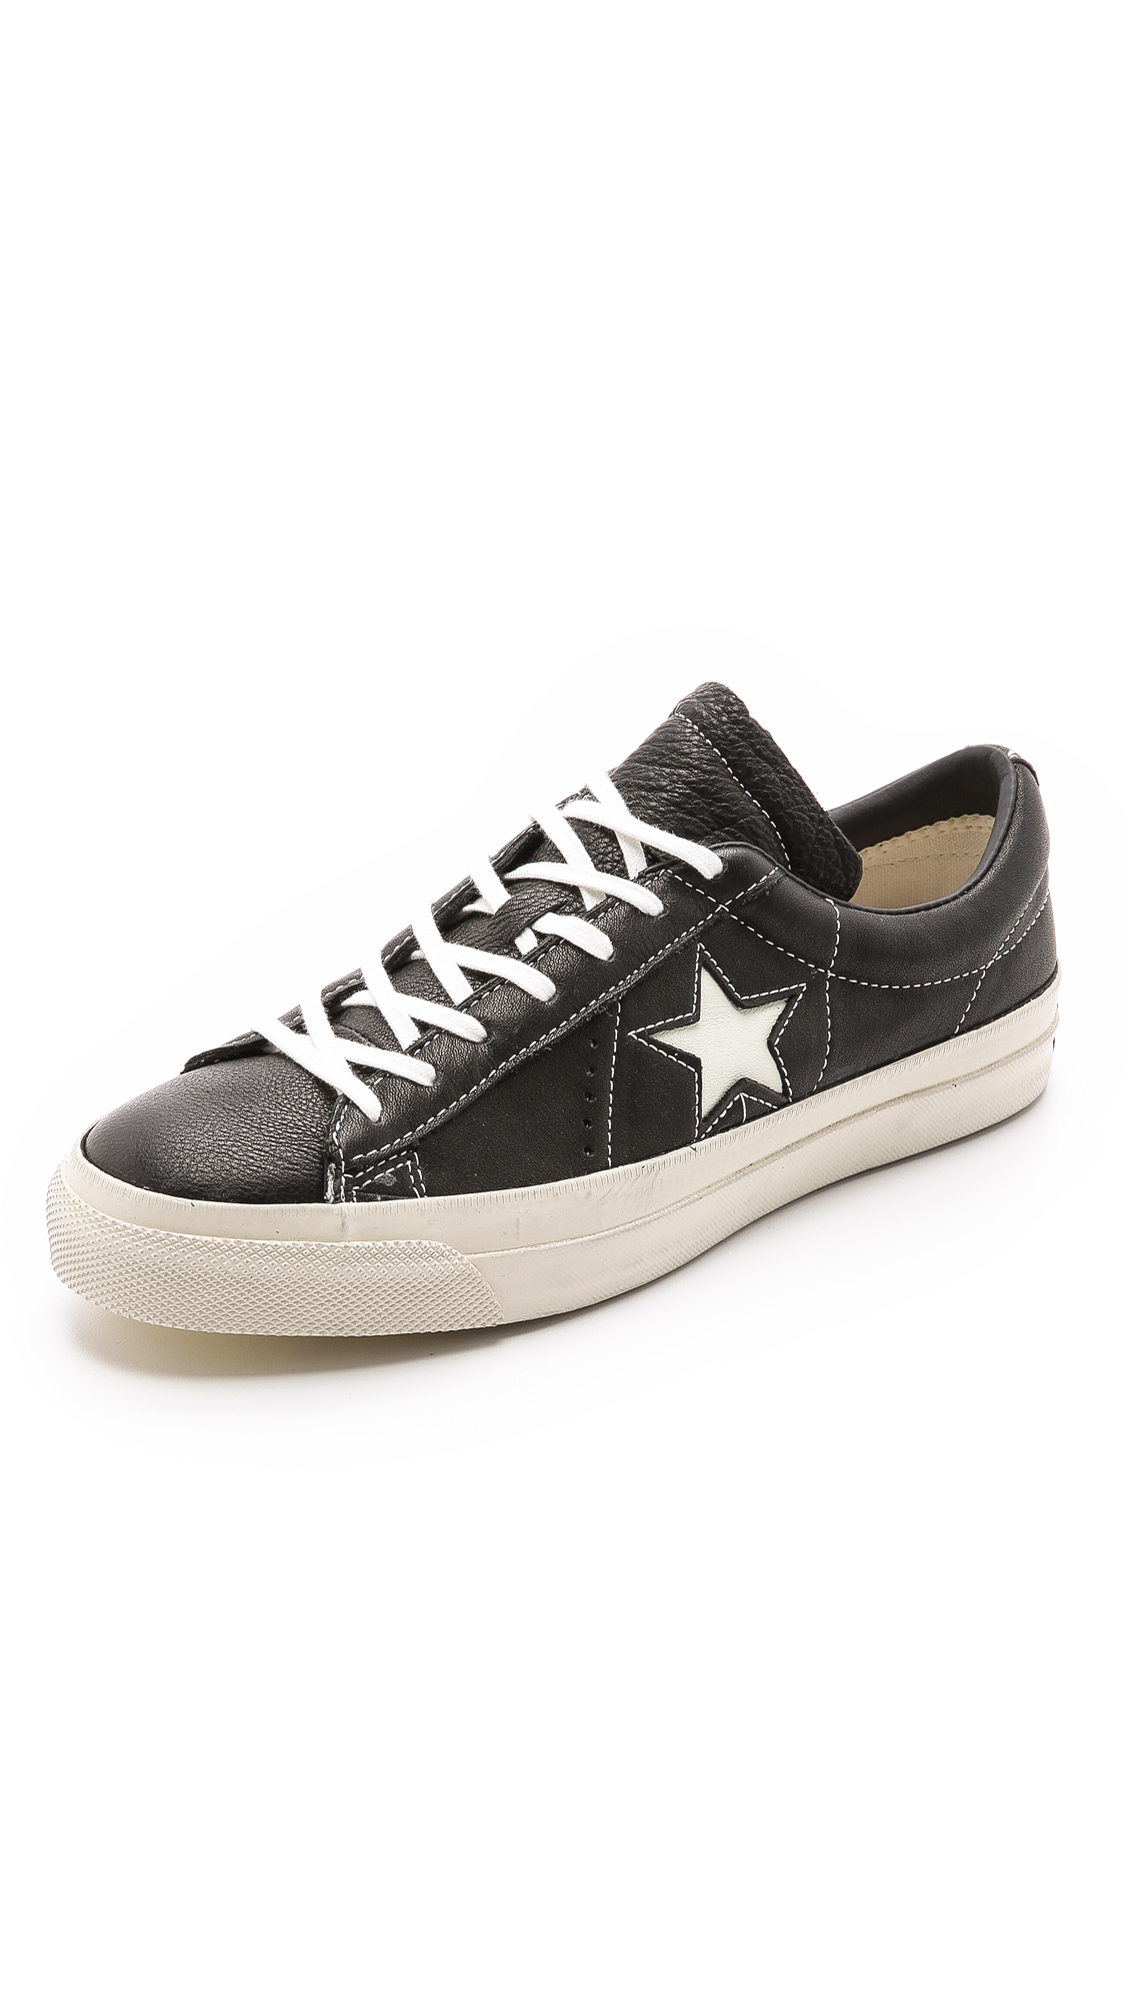 Converse john varvatos one star gallery. previously sold at: east dane · menu0027s john varvatos converse OKYQGET